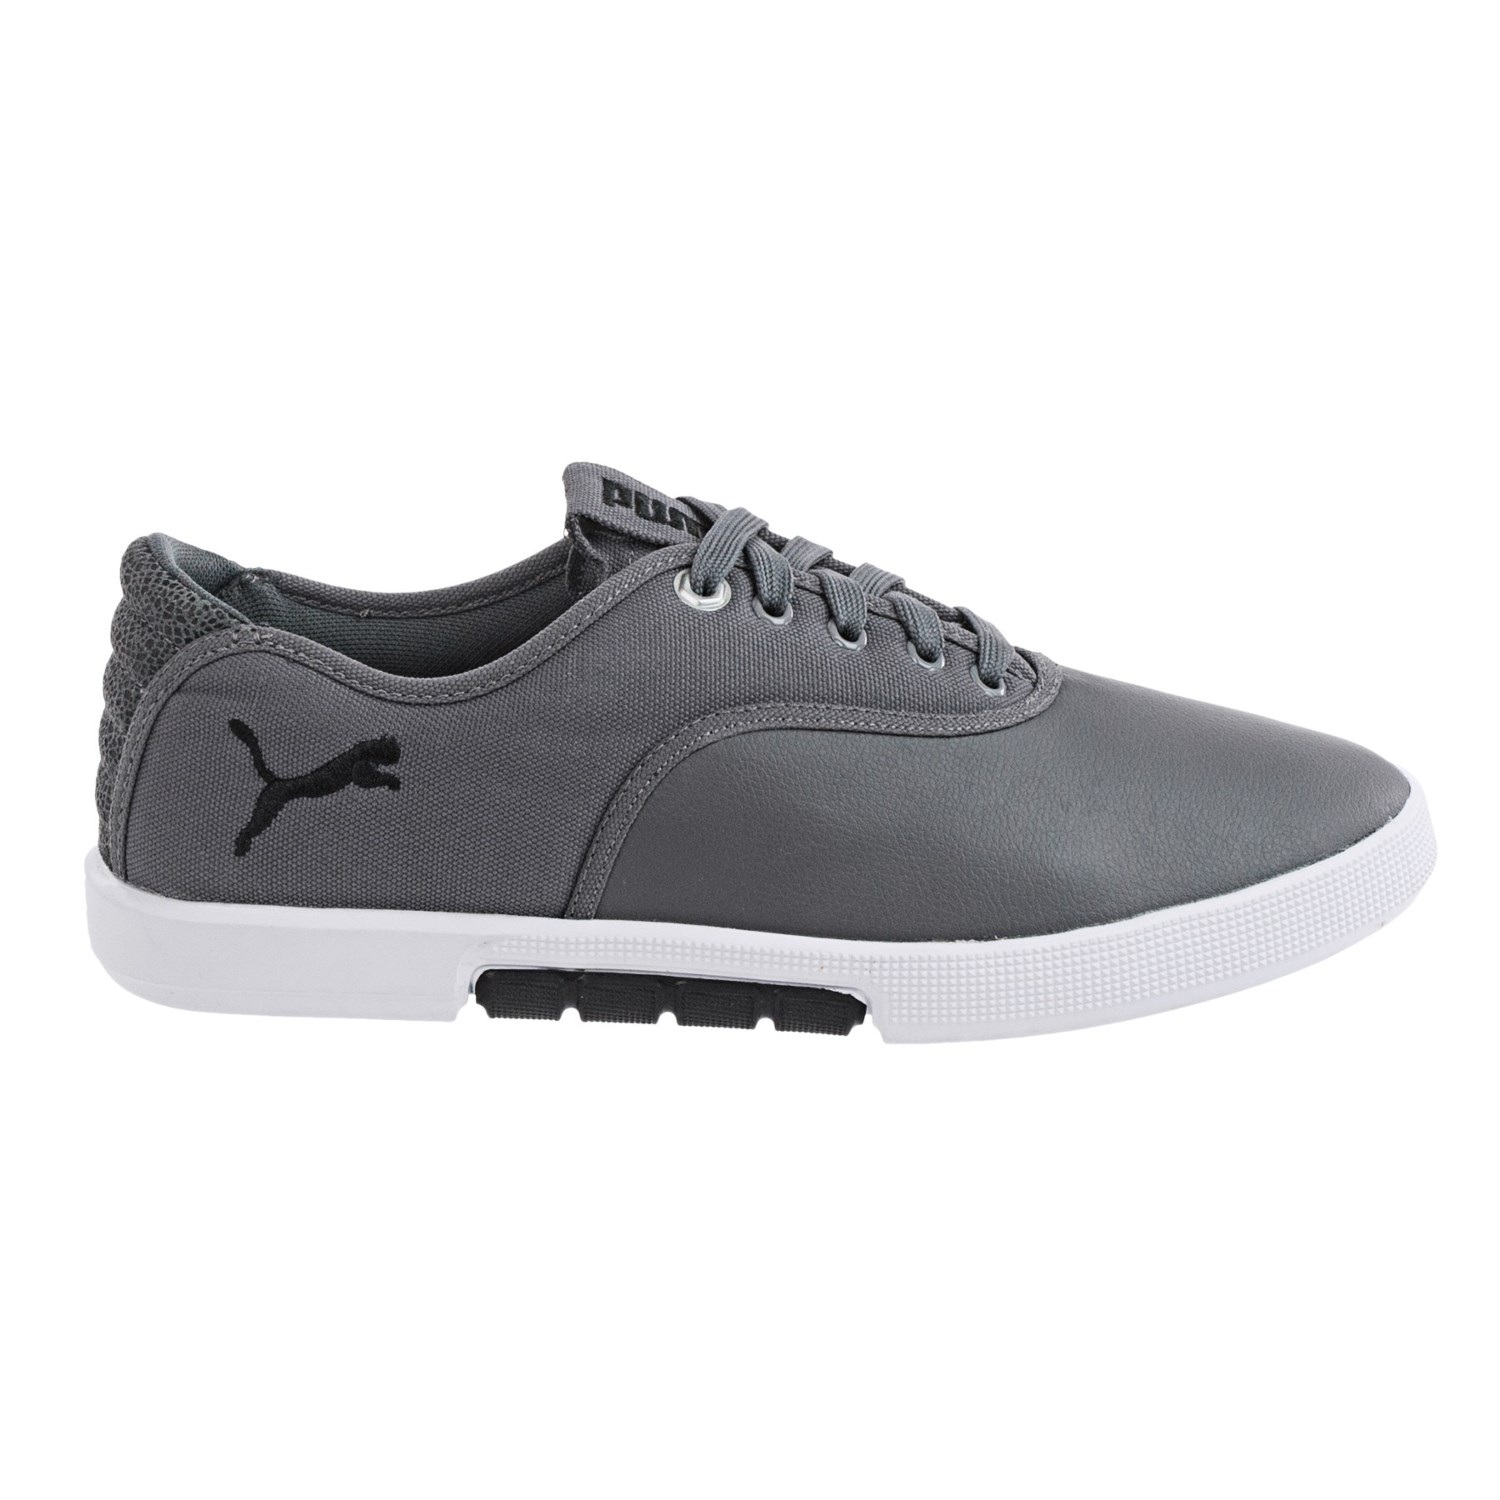 4 p s puma For over 30 years, wss has offered a tremendous selection and best values from  the  pumasuede classic - mens  pumaclyde core l foil ps - boys kids.